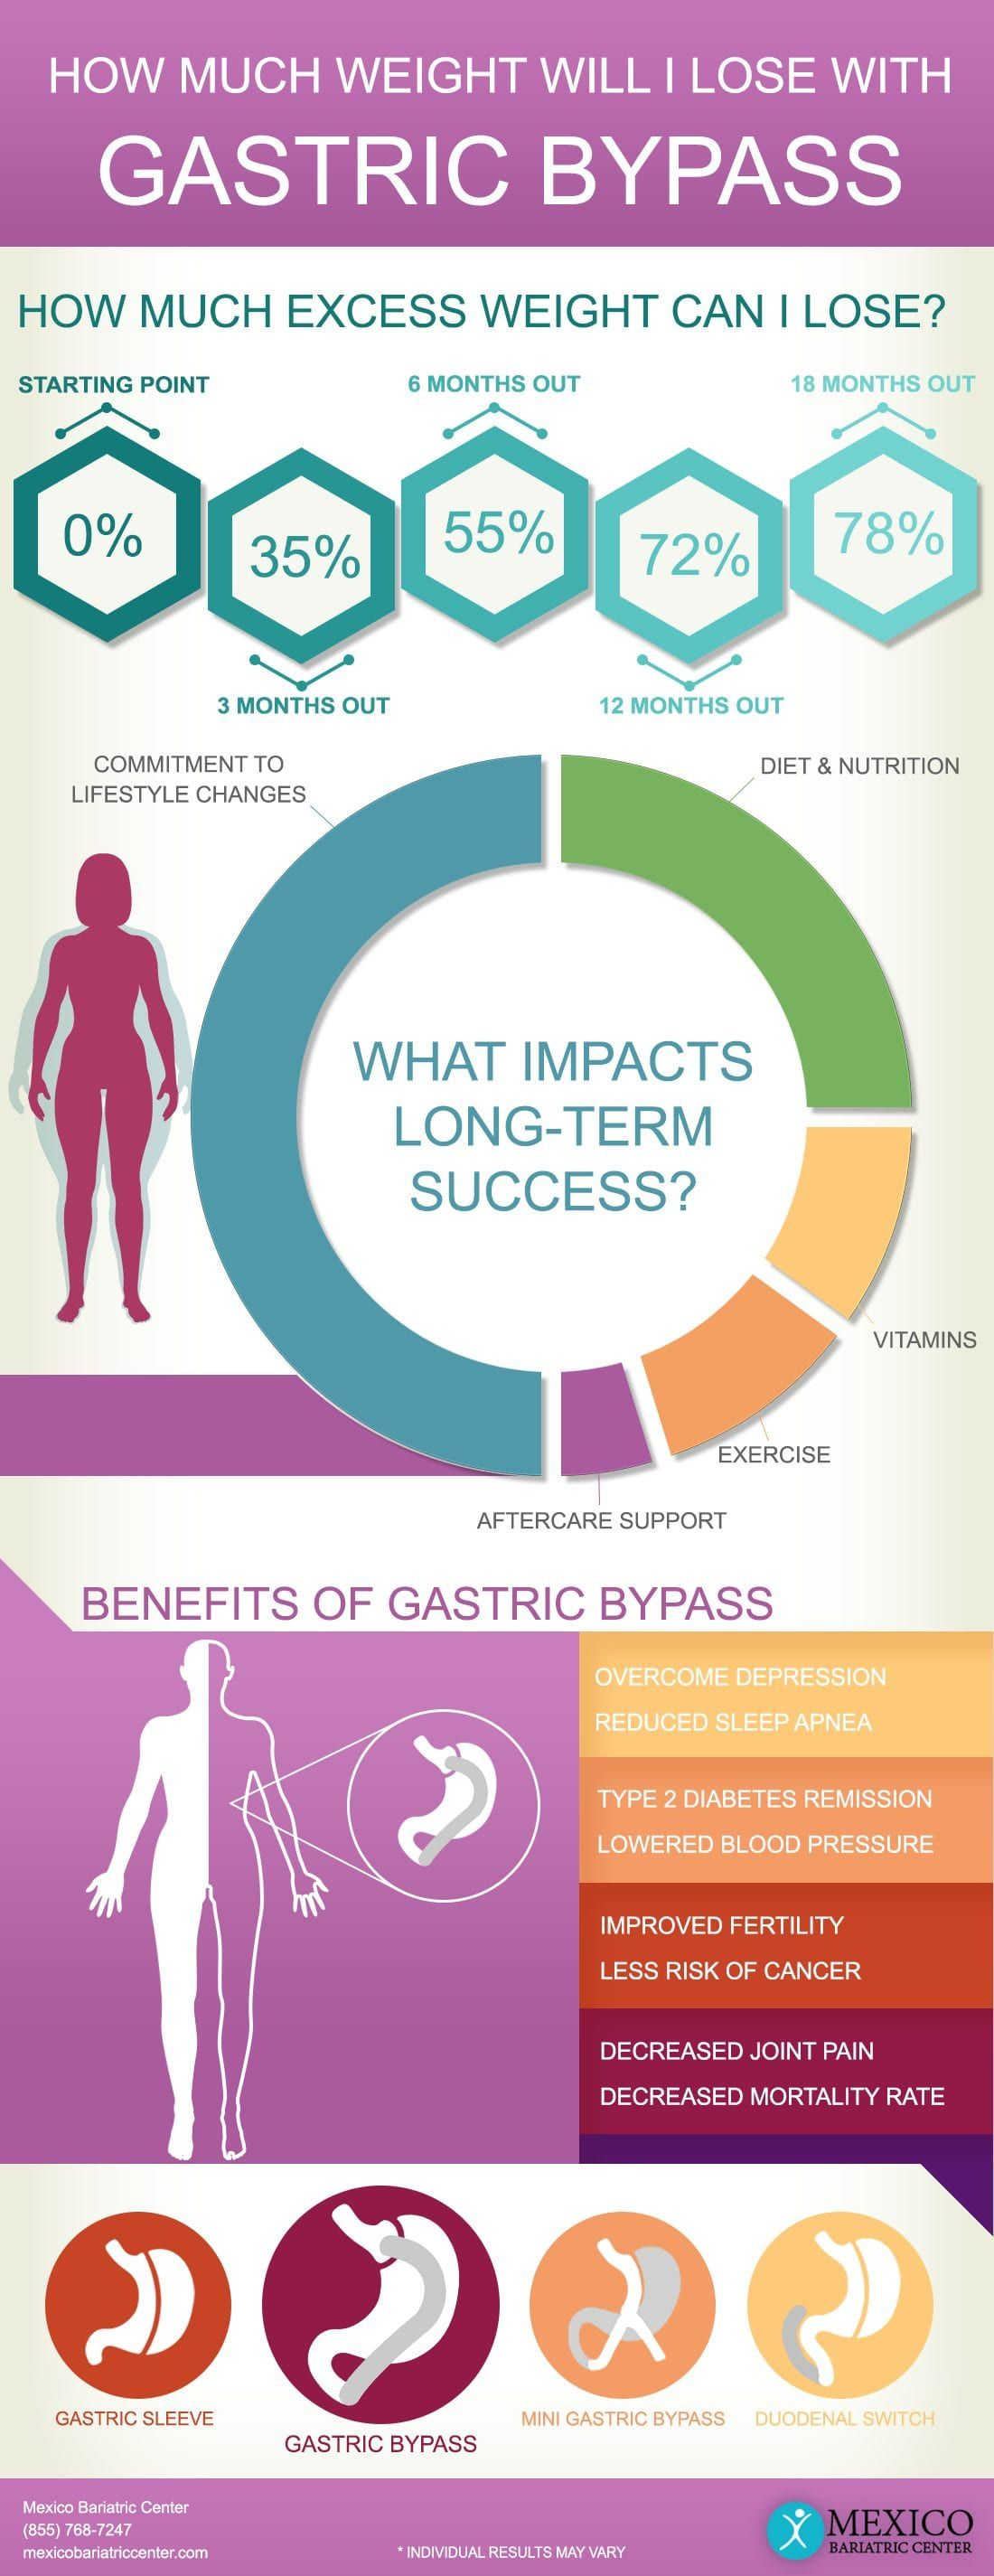 How Much Weight Will I Lose With Gastric Bypass Surgery ...